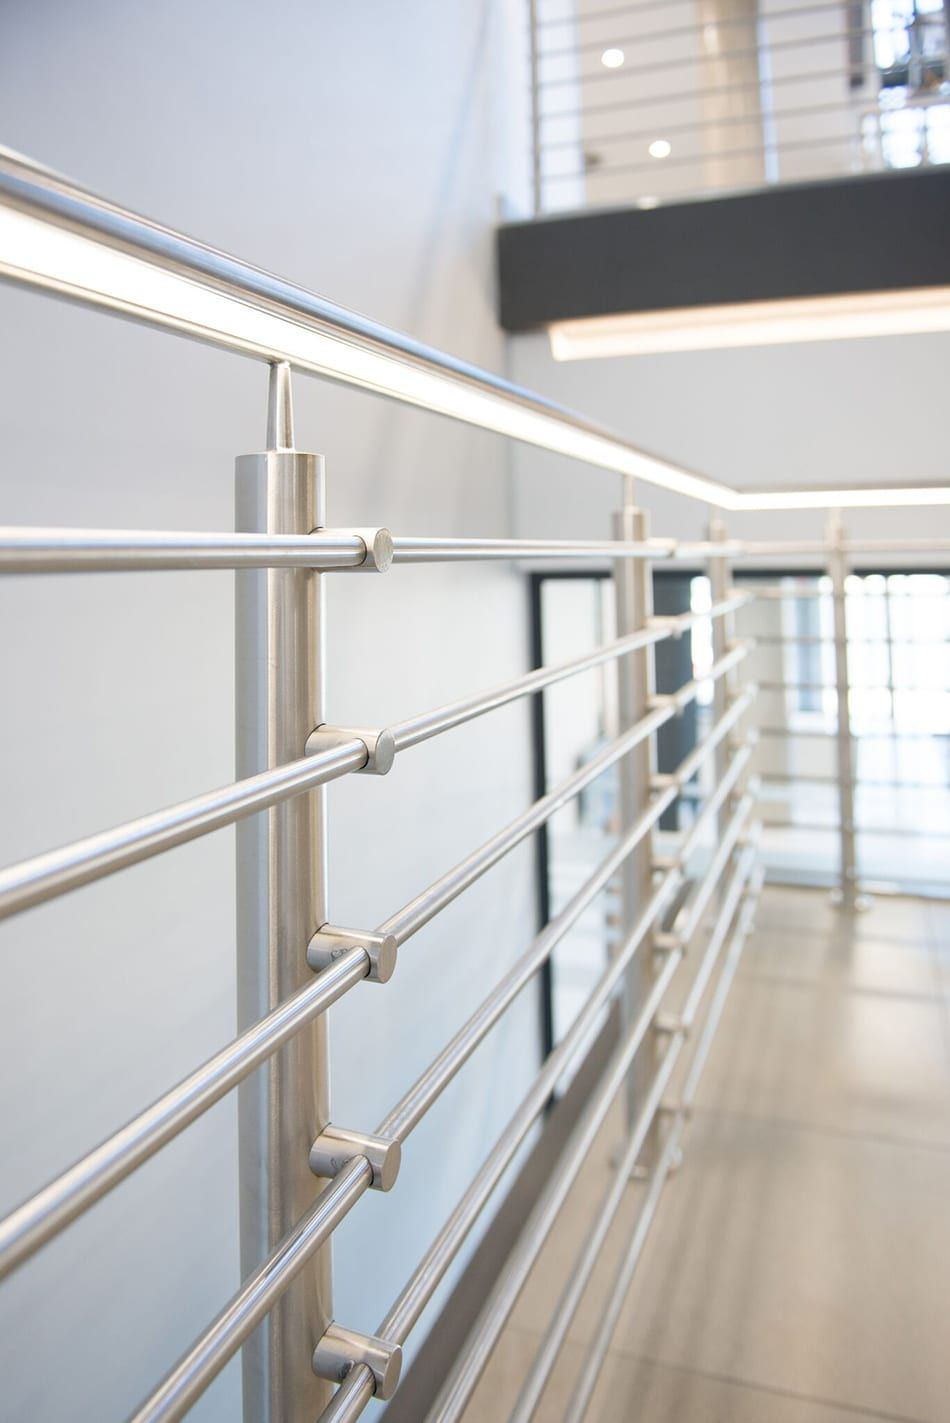 Why A Stainless Steel Balustrade Is The Smart Choice For Your New Home Steel Balustrade Steel Railing Design Stainless Steel Balustrade